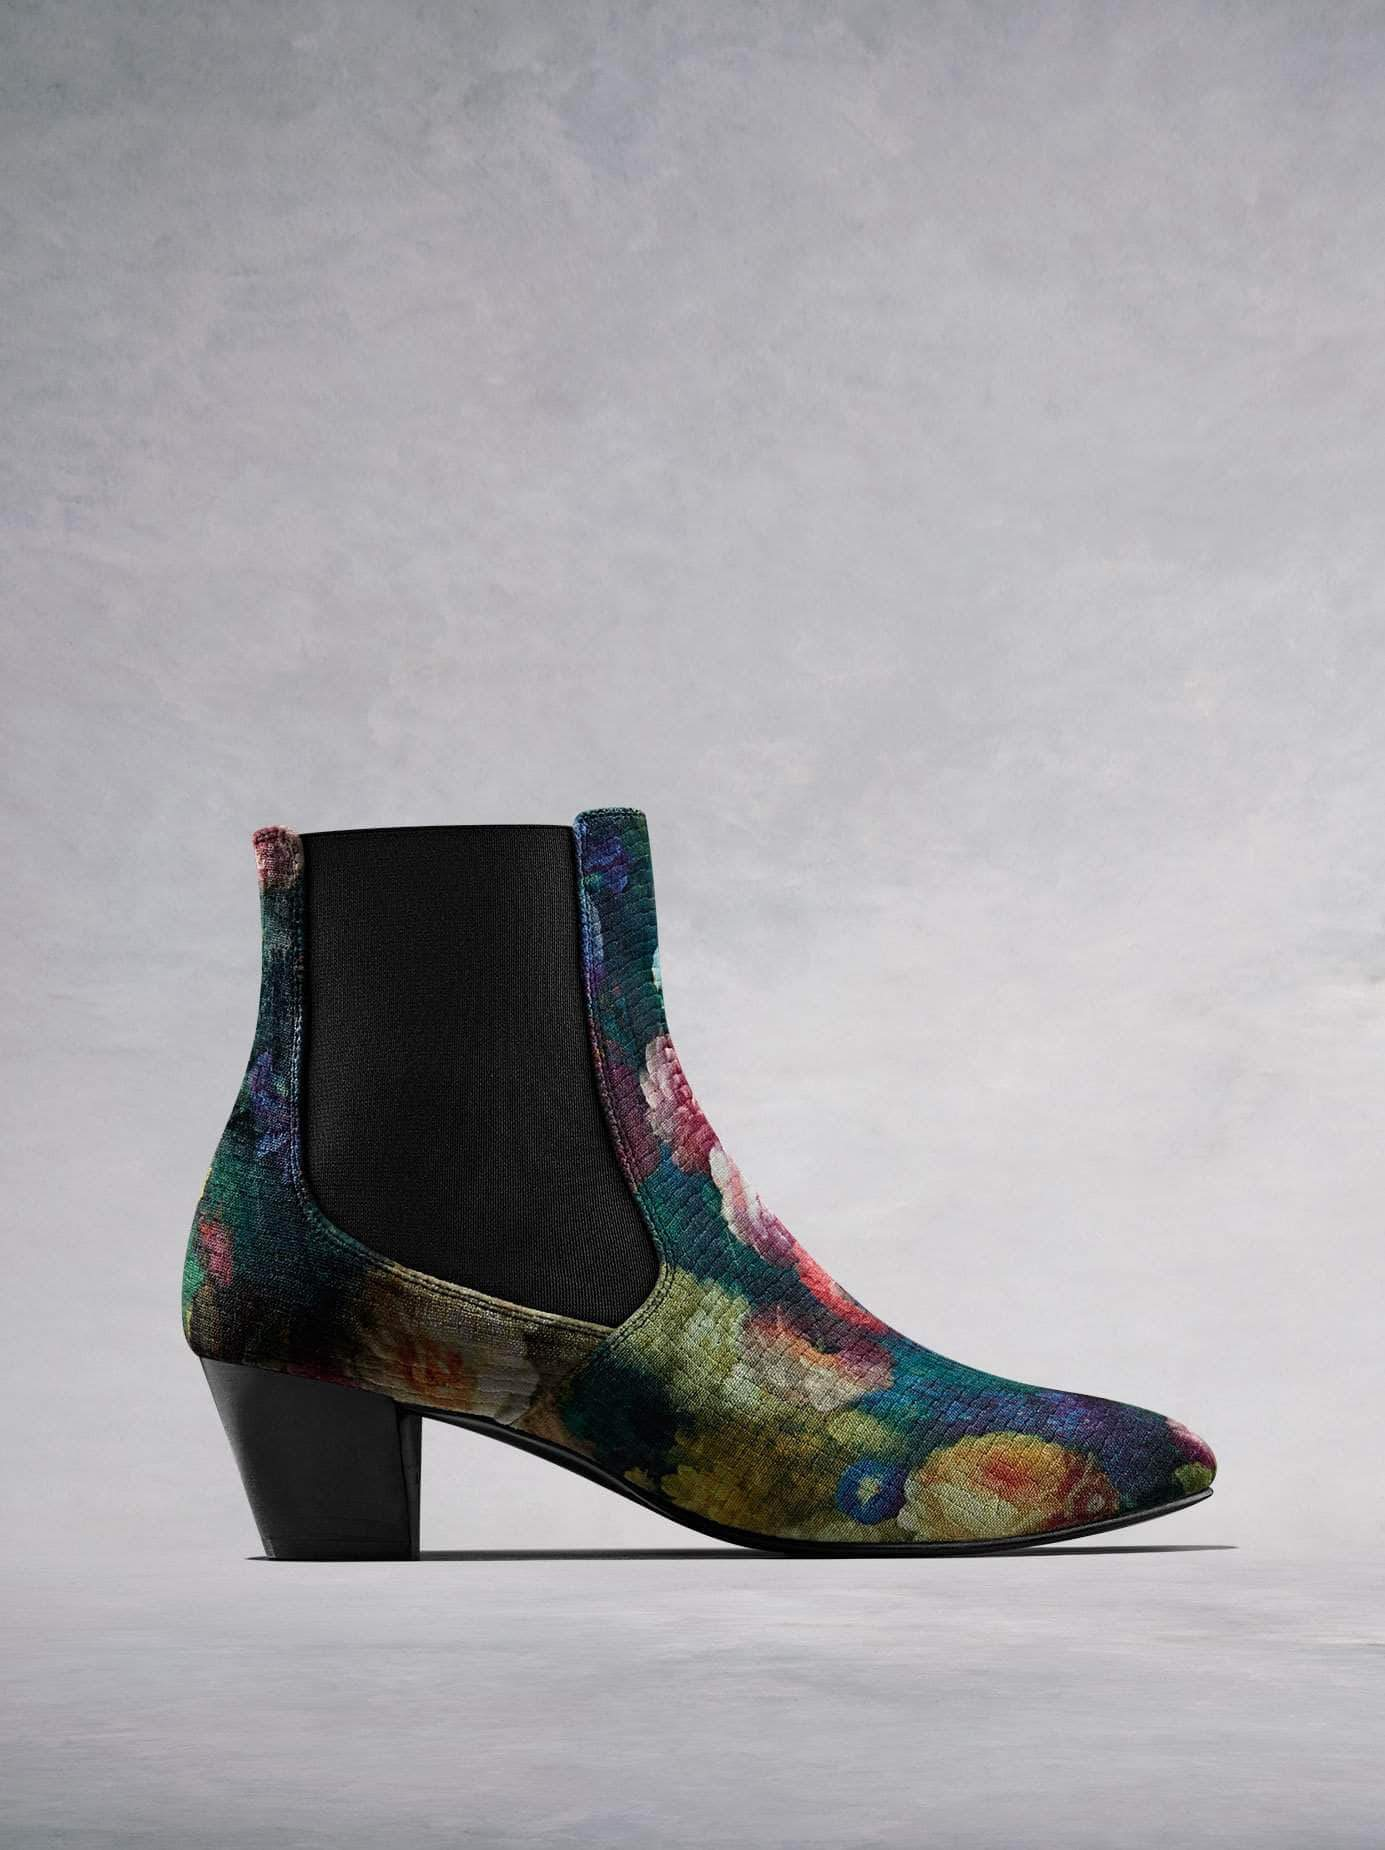 Our Edison Chelsea boot comes in a stand-out embossed floral velvet and features a directional soft chisel toe and slim, low Italian heel.